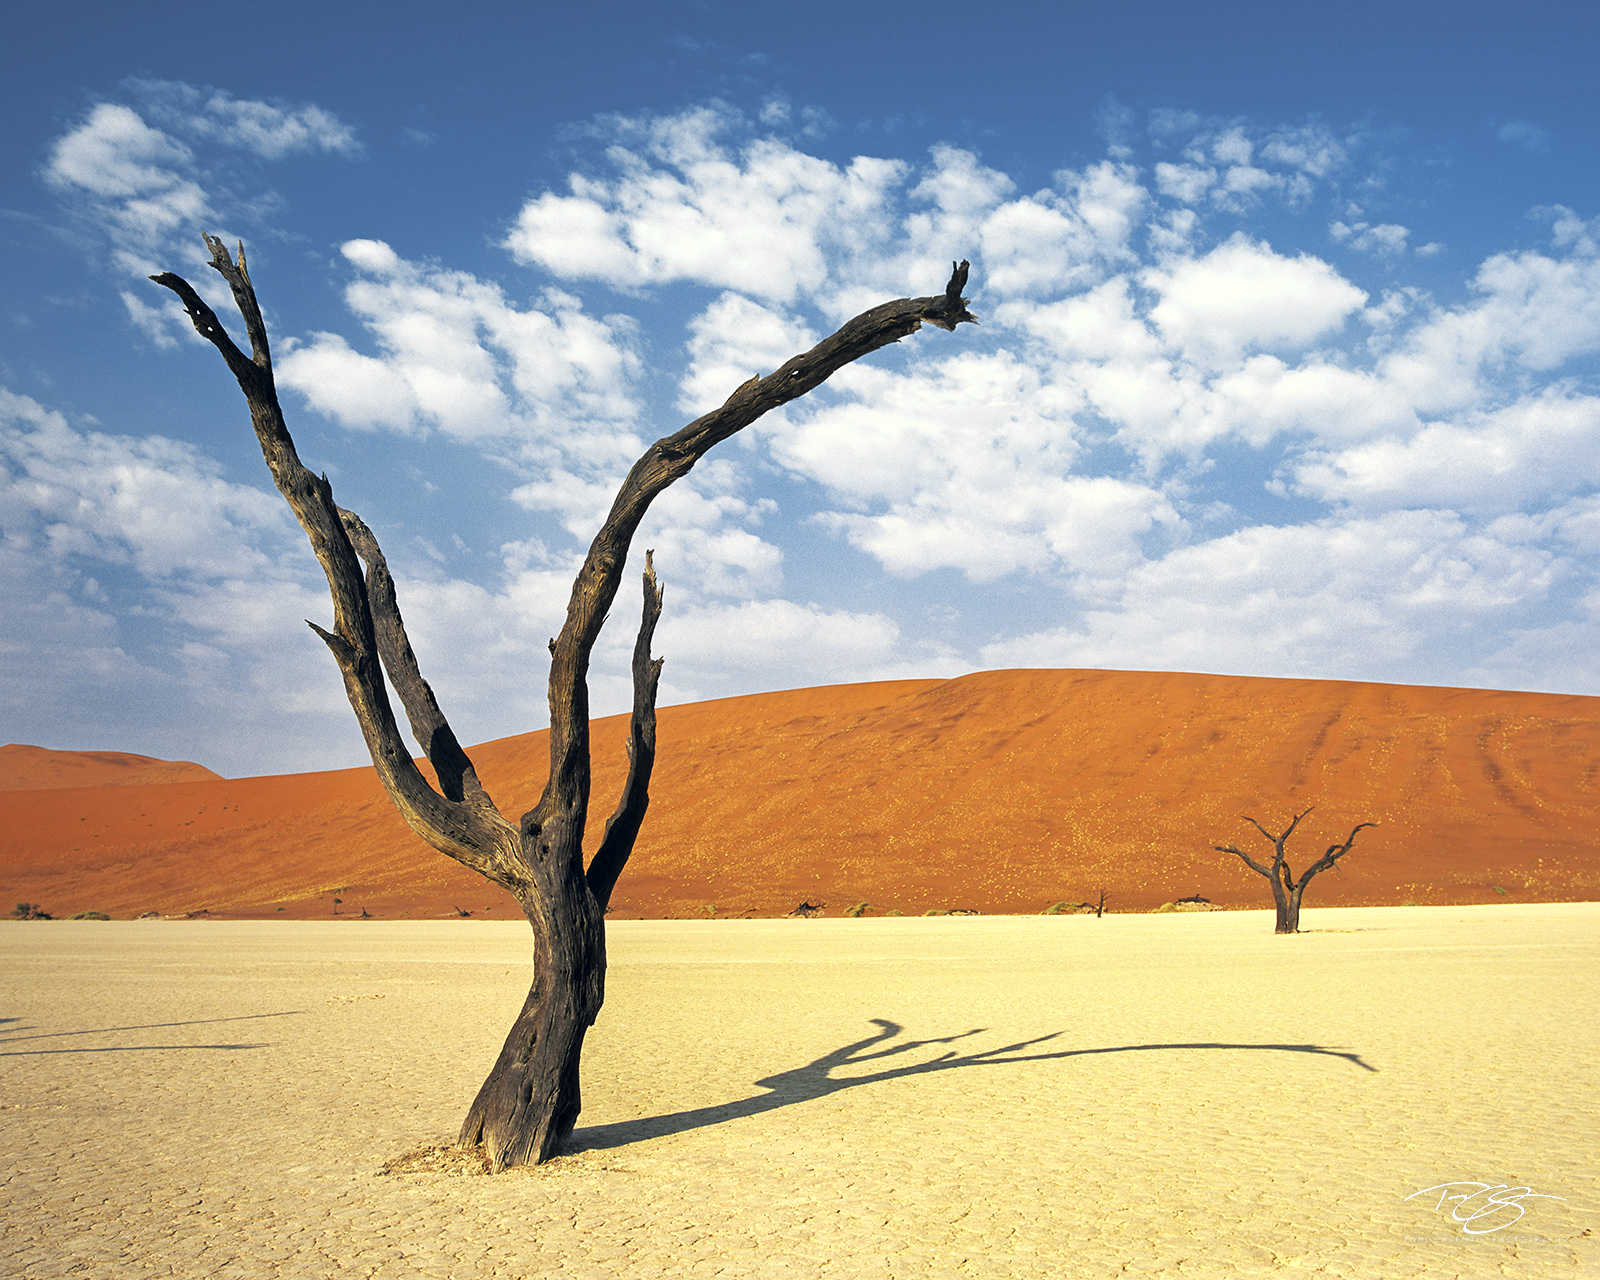 Namibia, coral sand dunes, camelthorn acacia, dead trees, dry deserted, namib desert, dead vlei, sossusvlei, world's tallest sand dunes, abstract, dry lake bed, namibia, southwest africa, swakopmund, photo